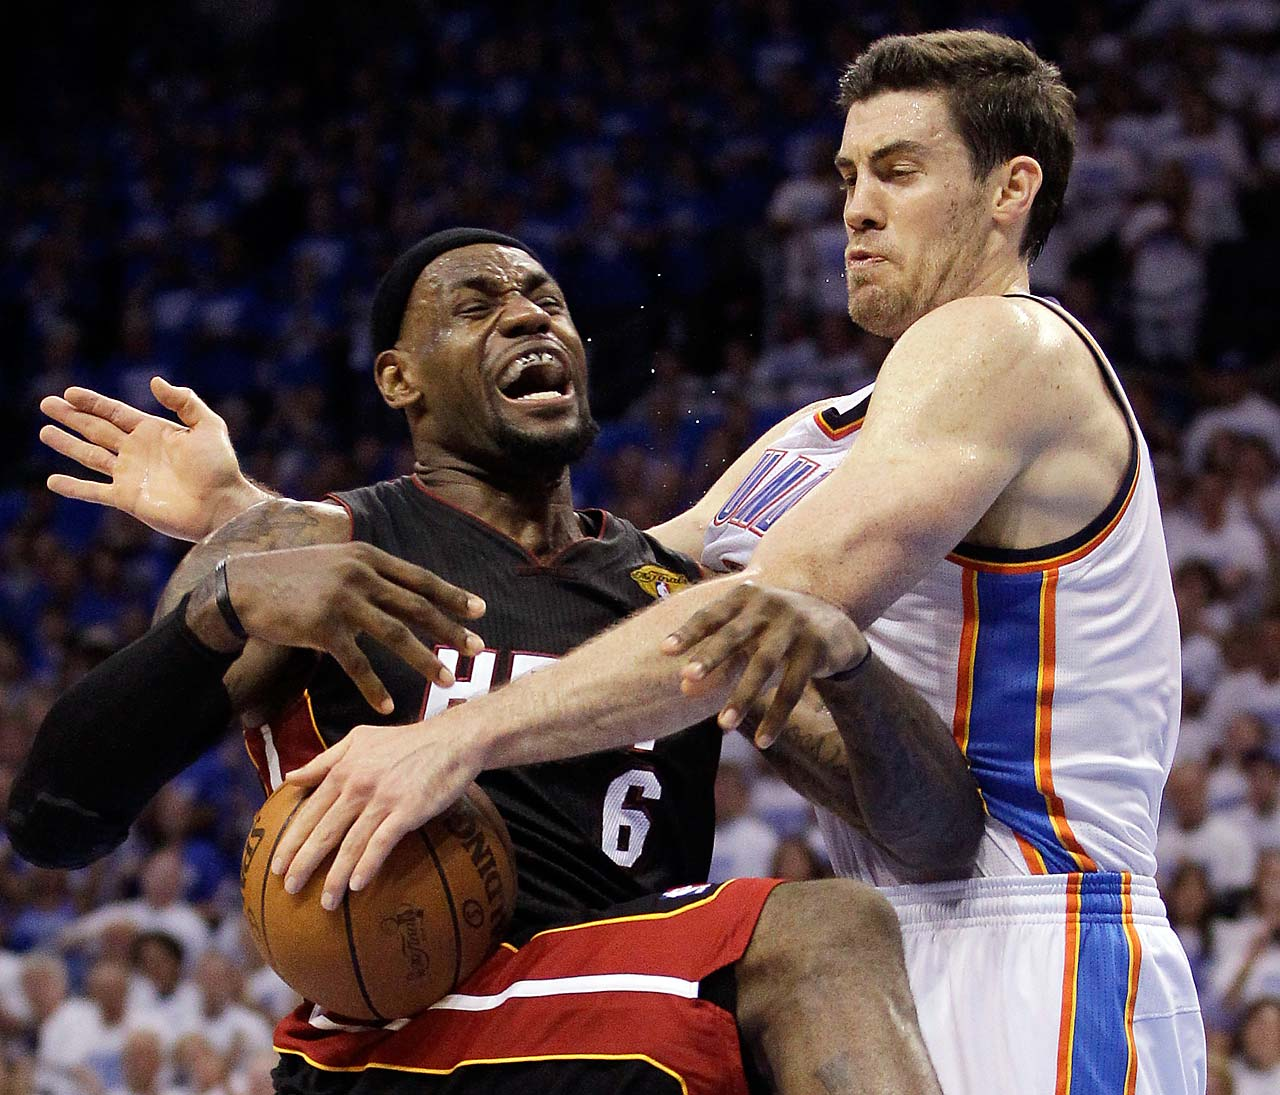 Oklahoma City Thunder power forward Nick Collison fouls LeBron James during Game 2 of the NBA finals on June 14, 2012.